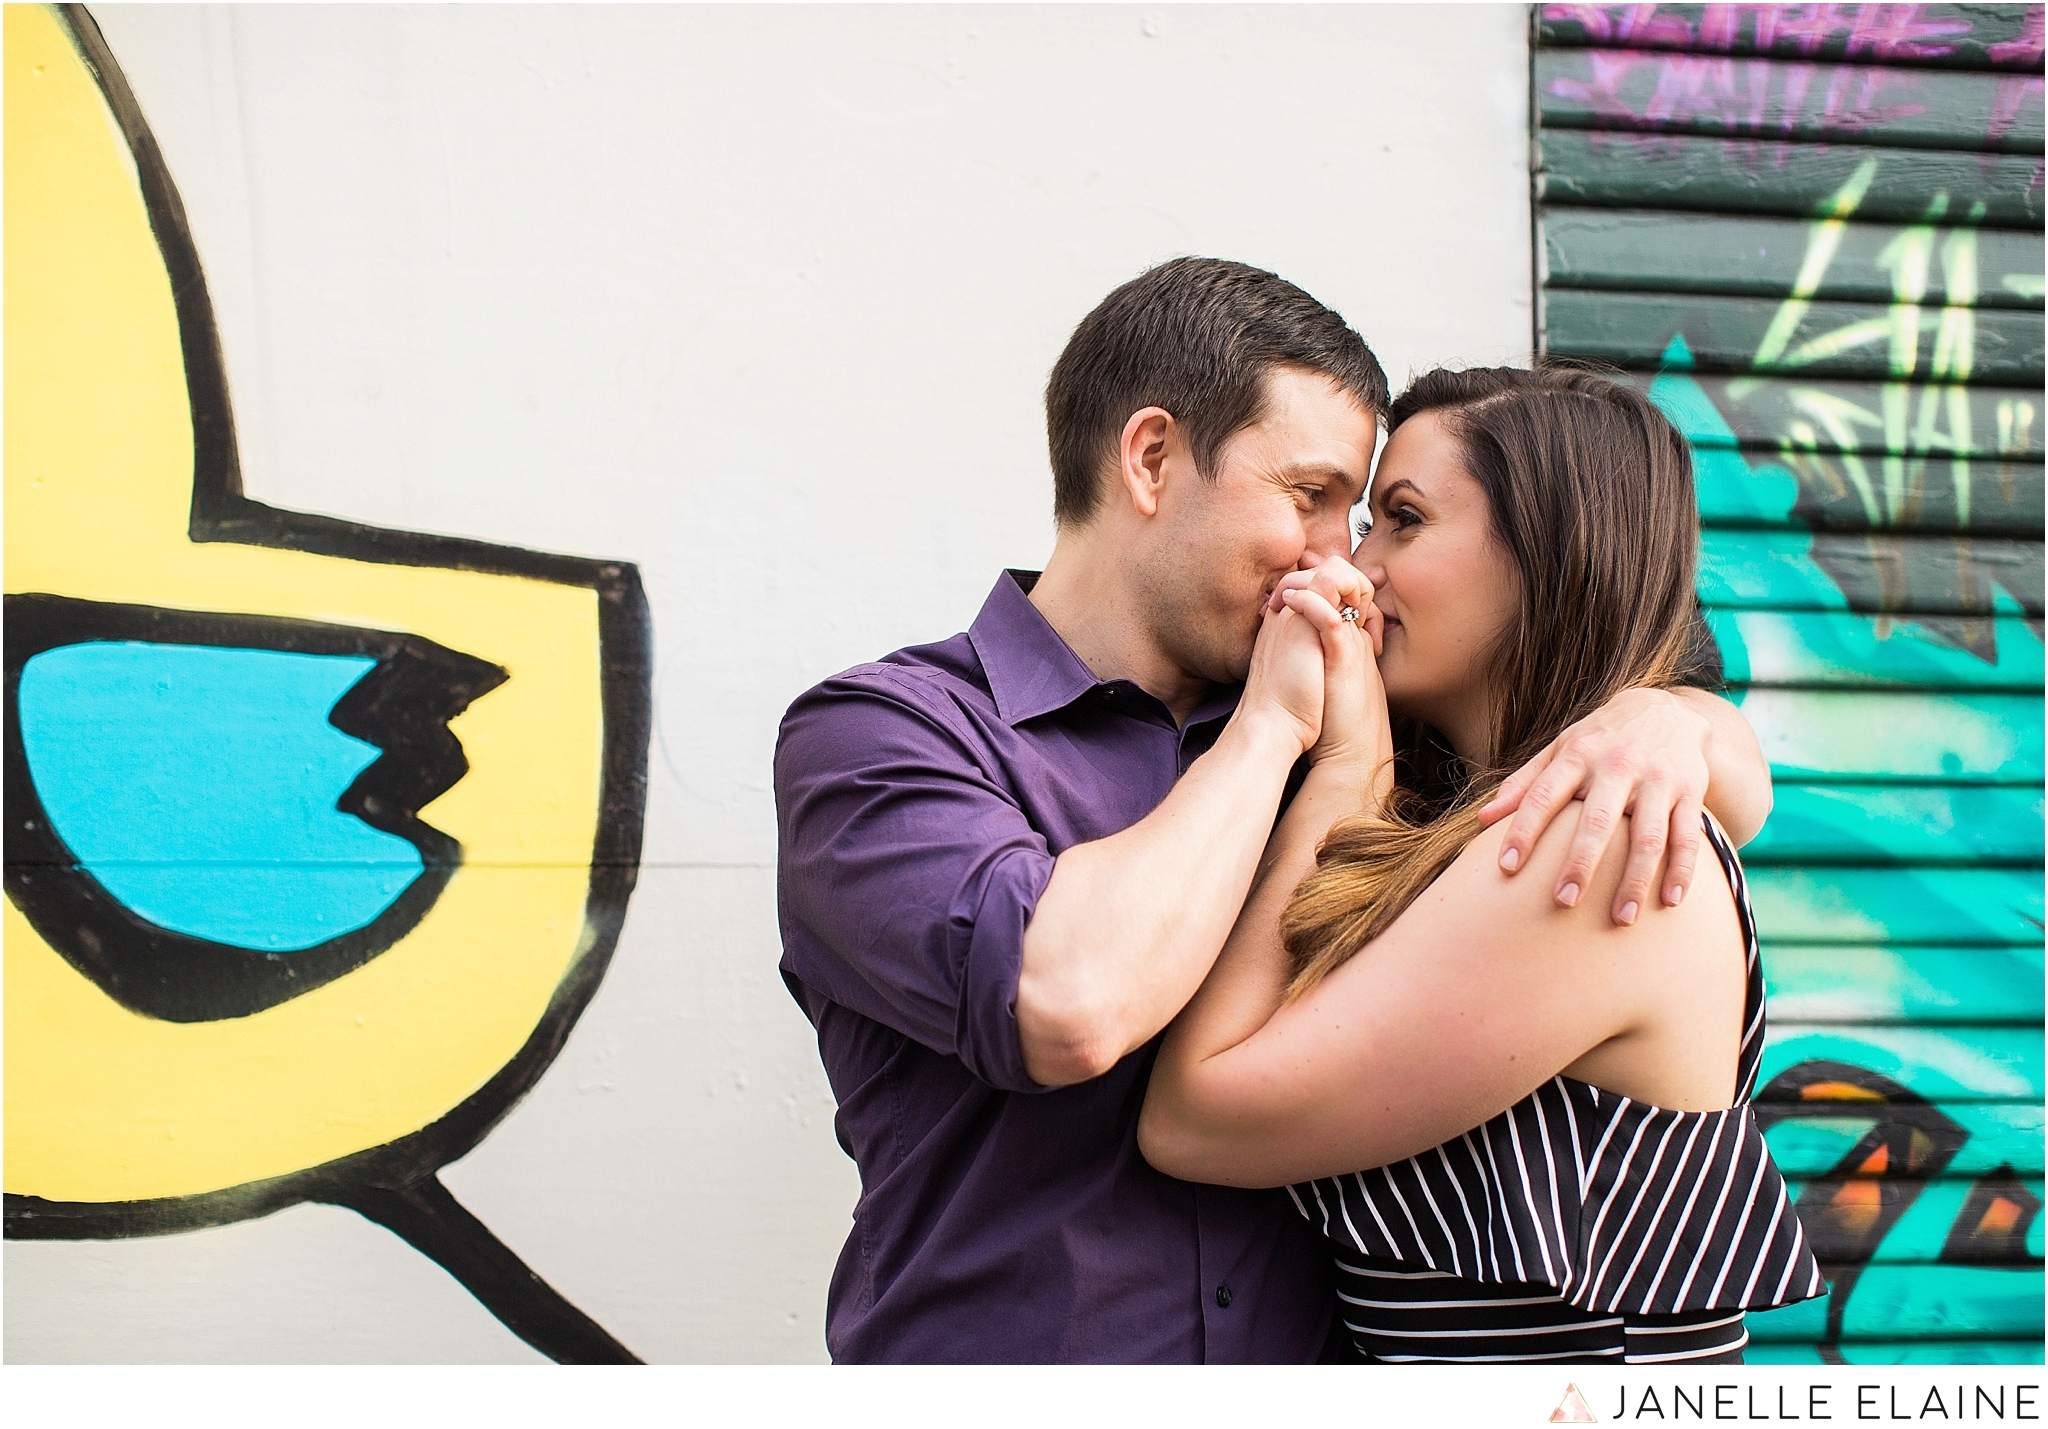 karen ethan-georgetown engagement photos-seattle-janelle elaine photography-153.jpg